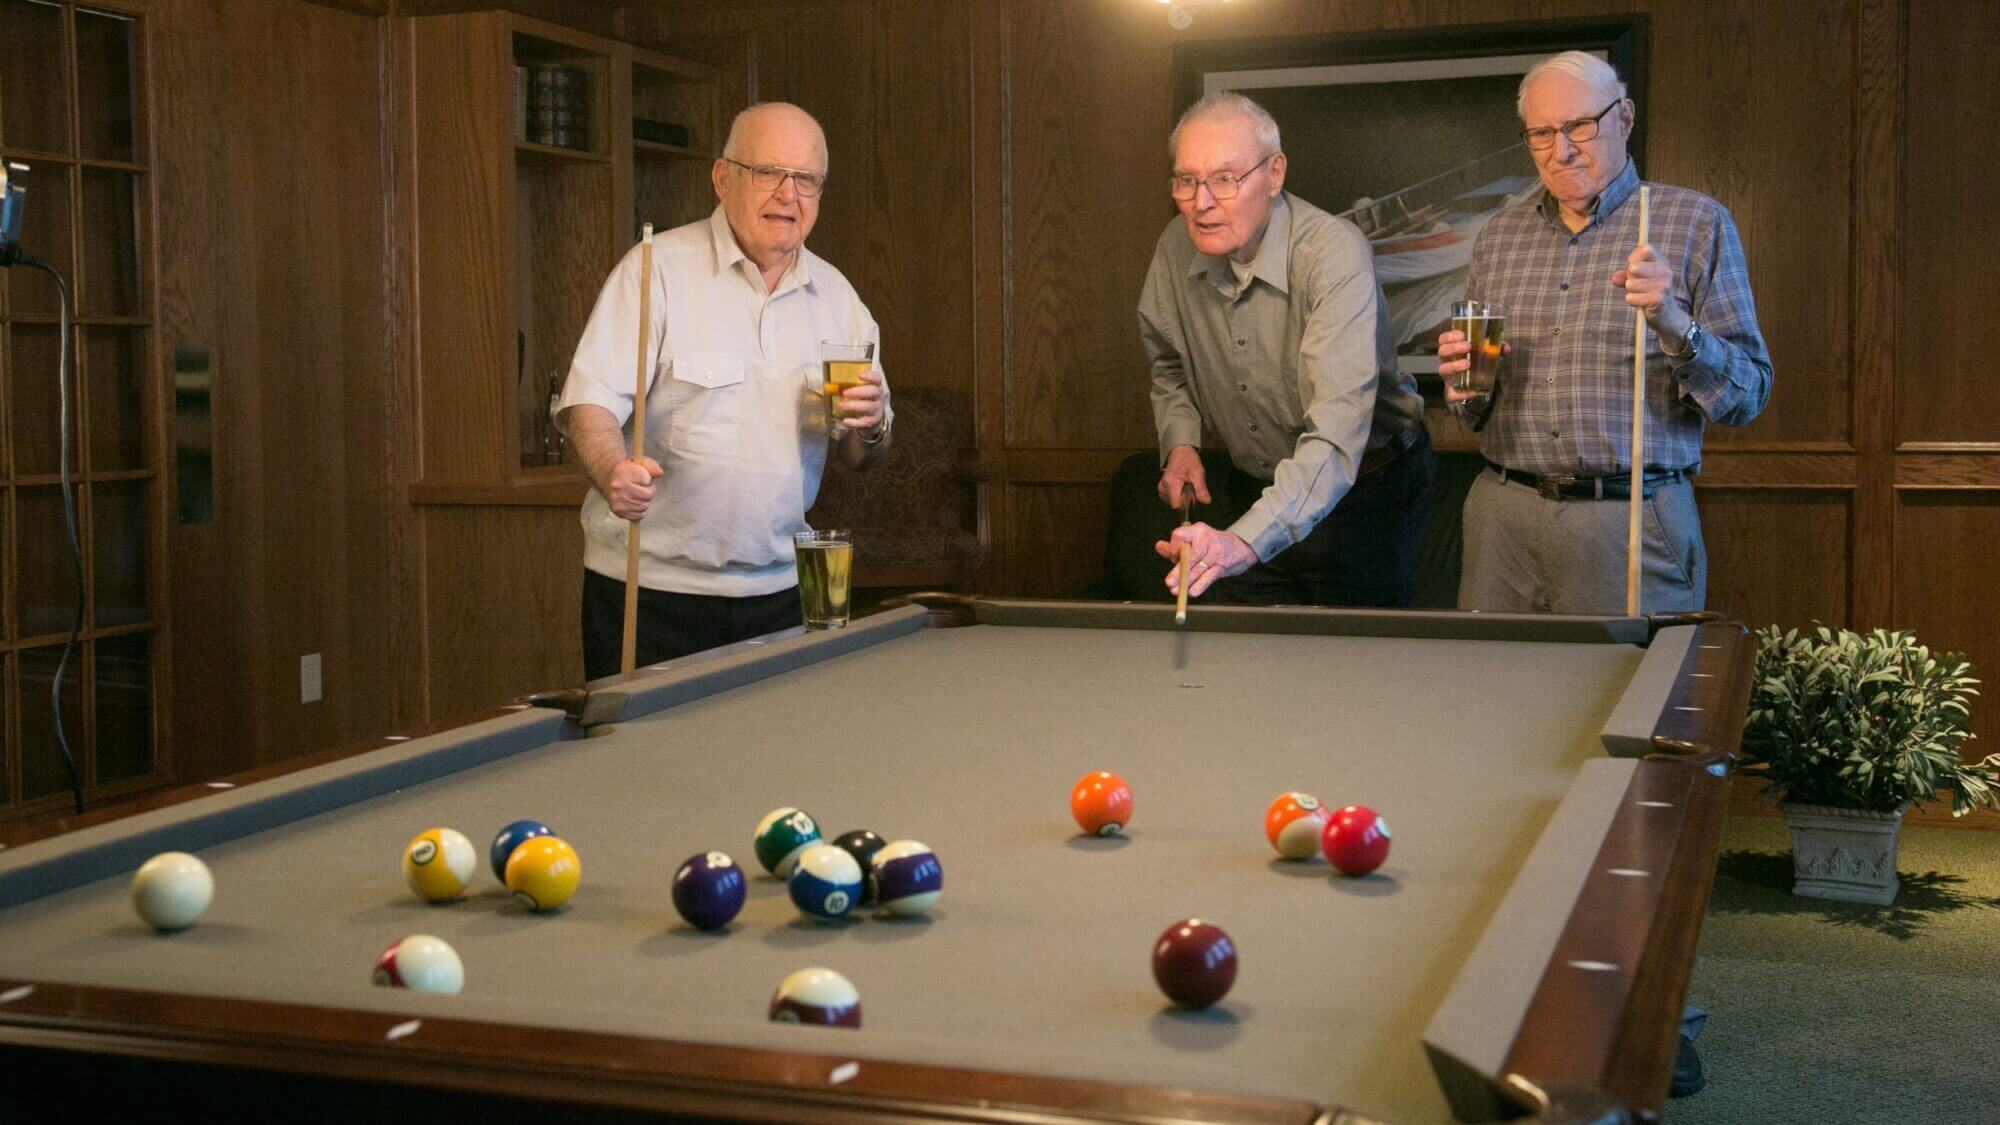 Senior friends playing billiards together, drinking beer.